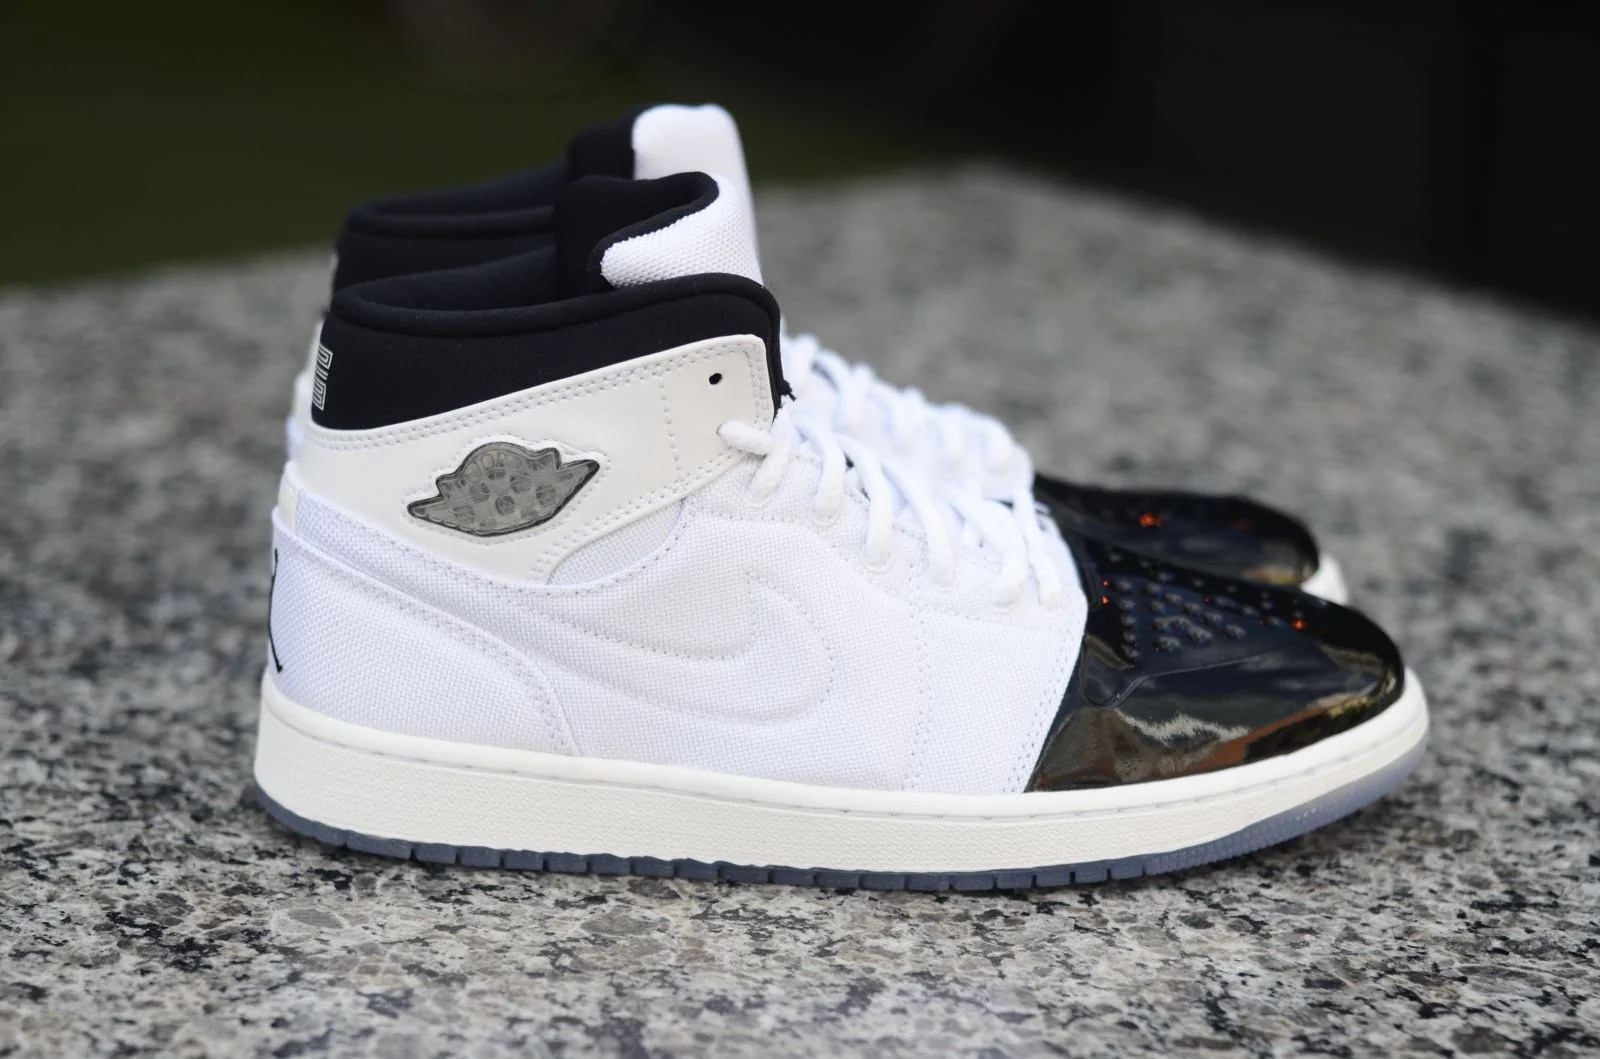 AIR JORDAN 1 RETRO '95 TXT - Concord and Bred – Capsule Online